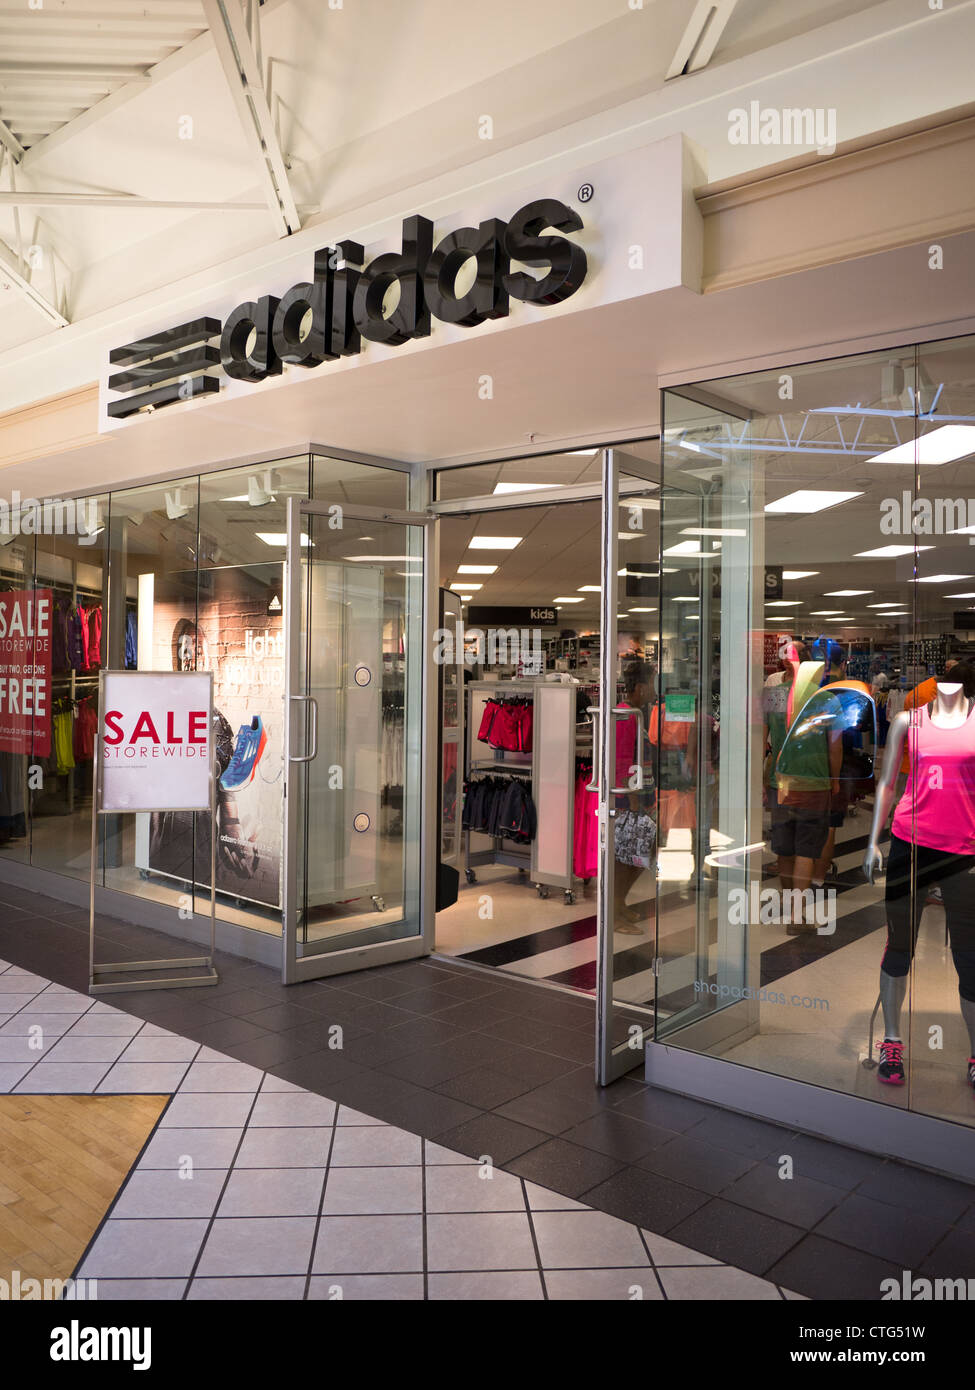 Adidas outlet store Photo Stock Alamy